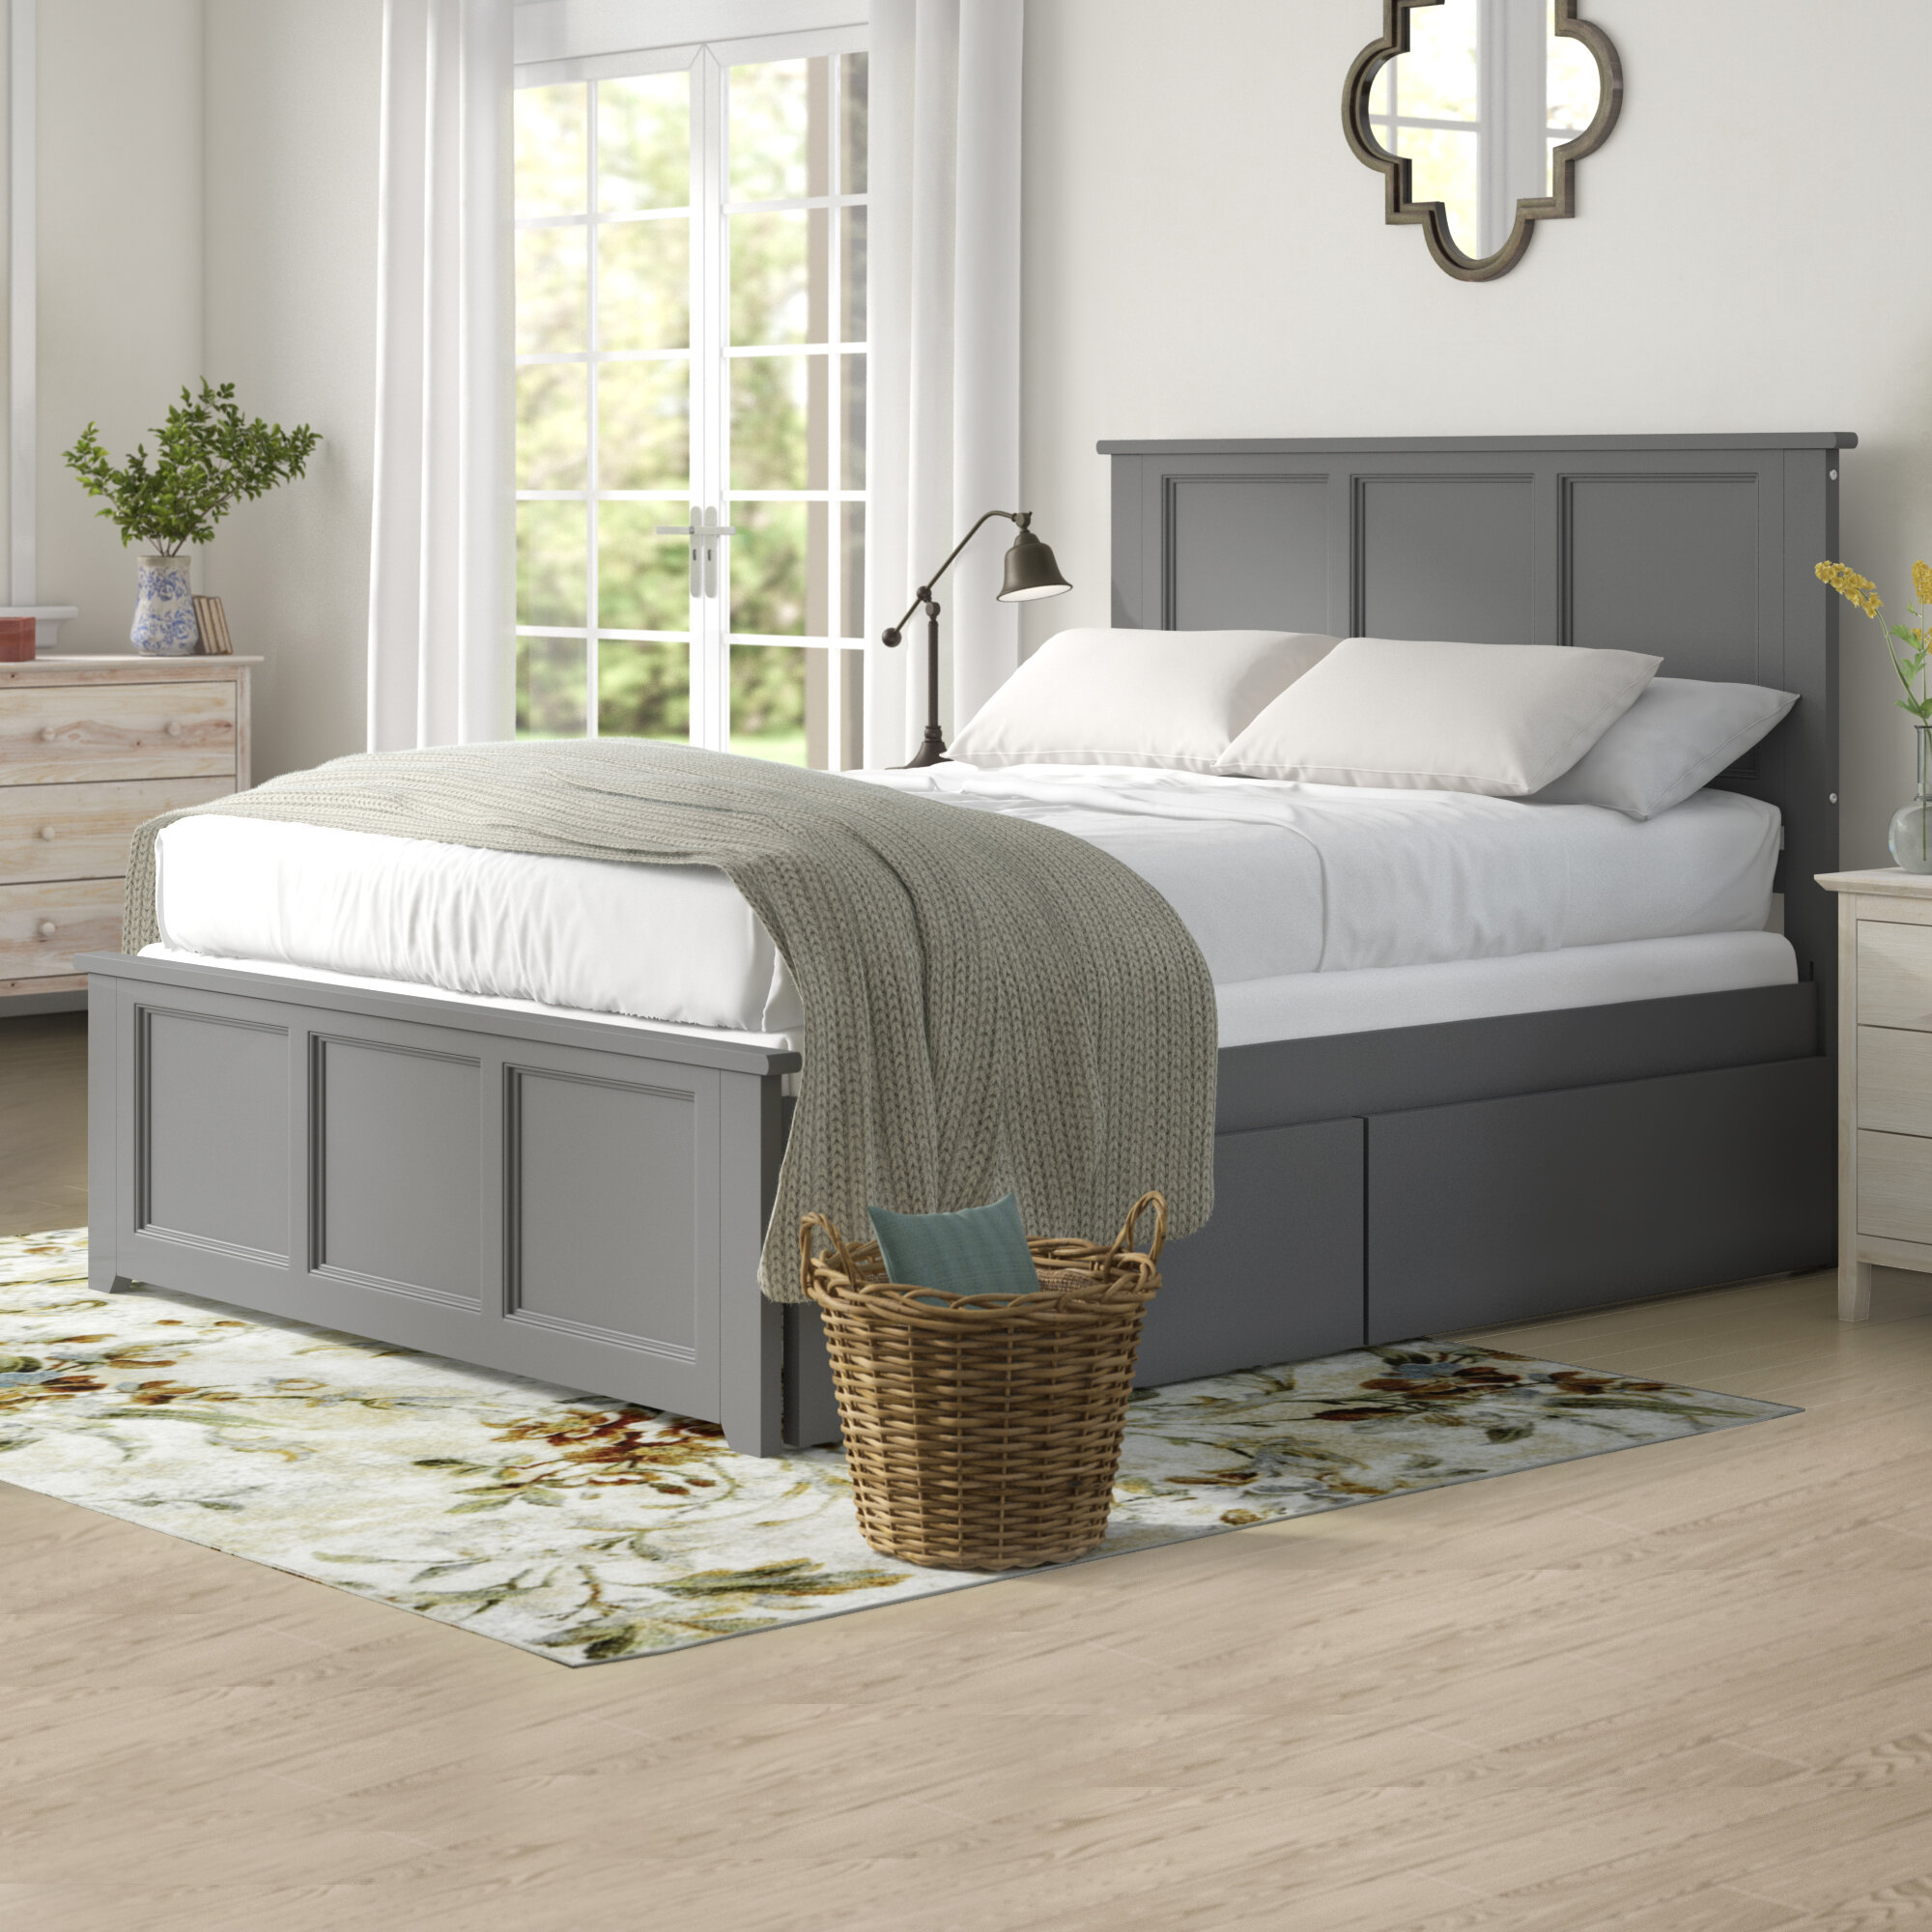 Queen Size White Wood Beds You Ll Love In 2020 Wayfair